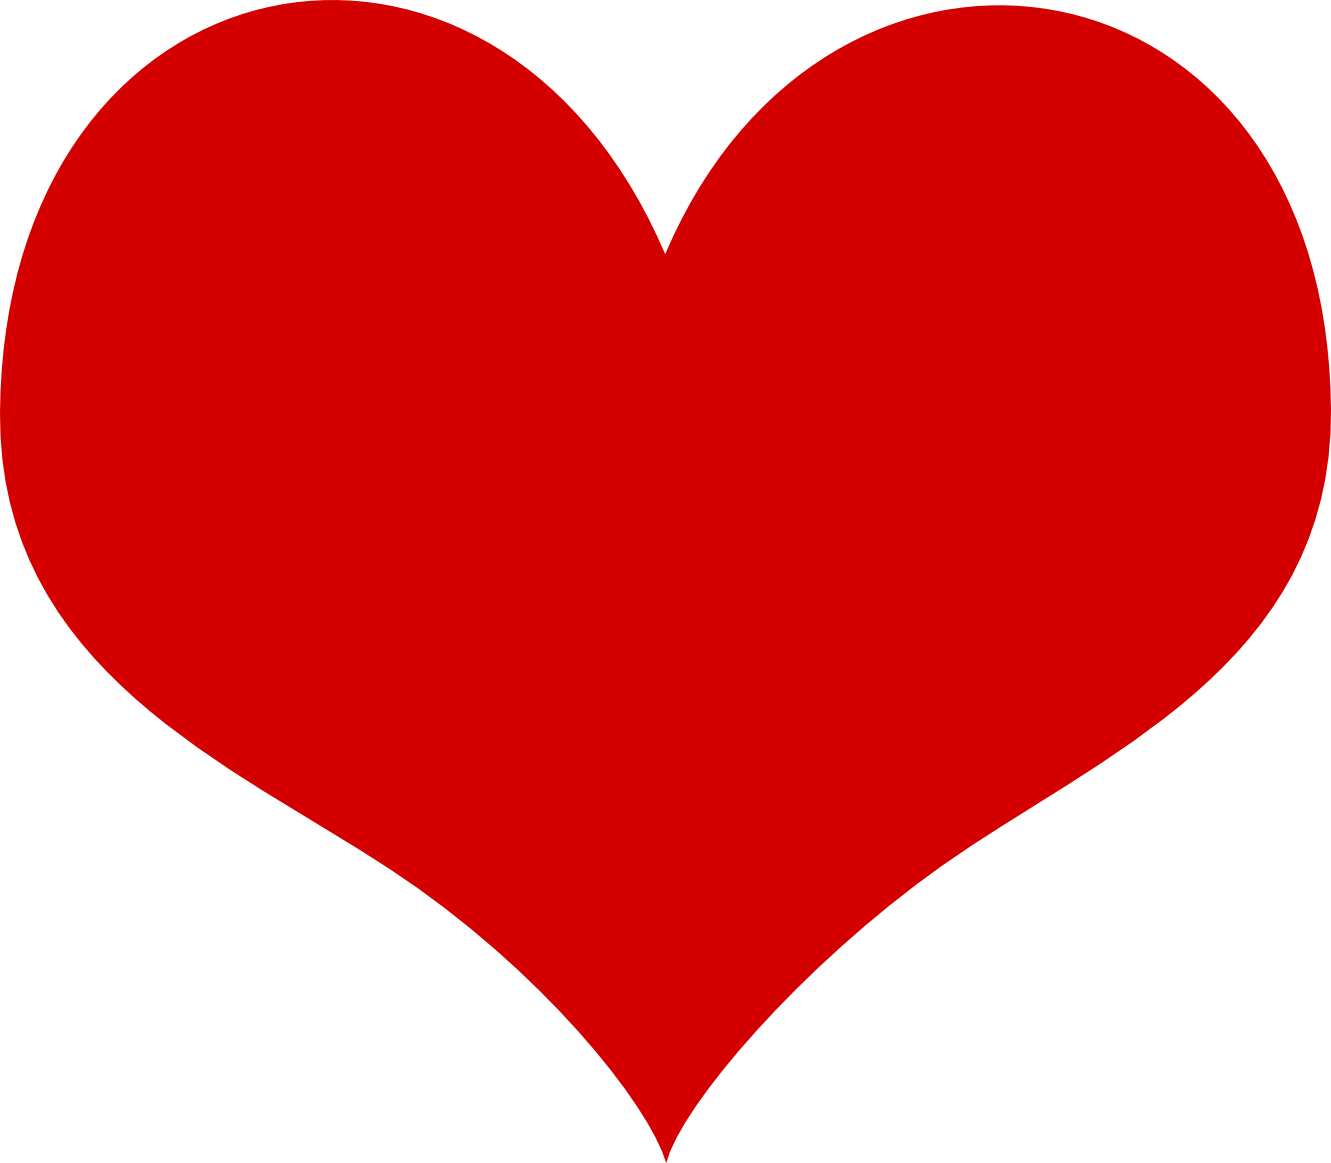 I heart png. Red image free download